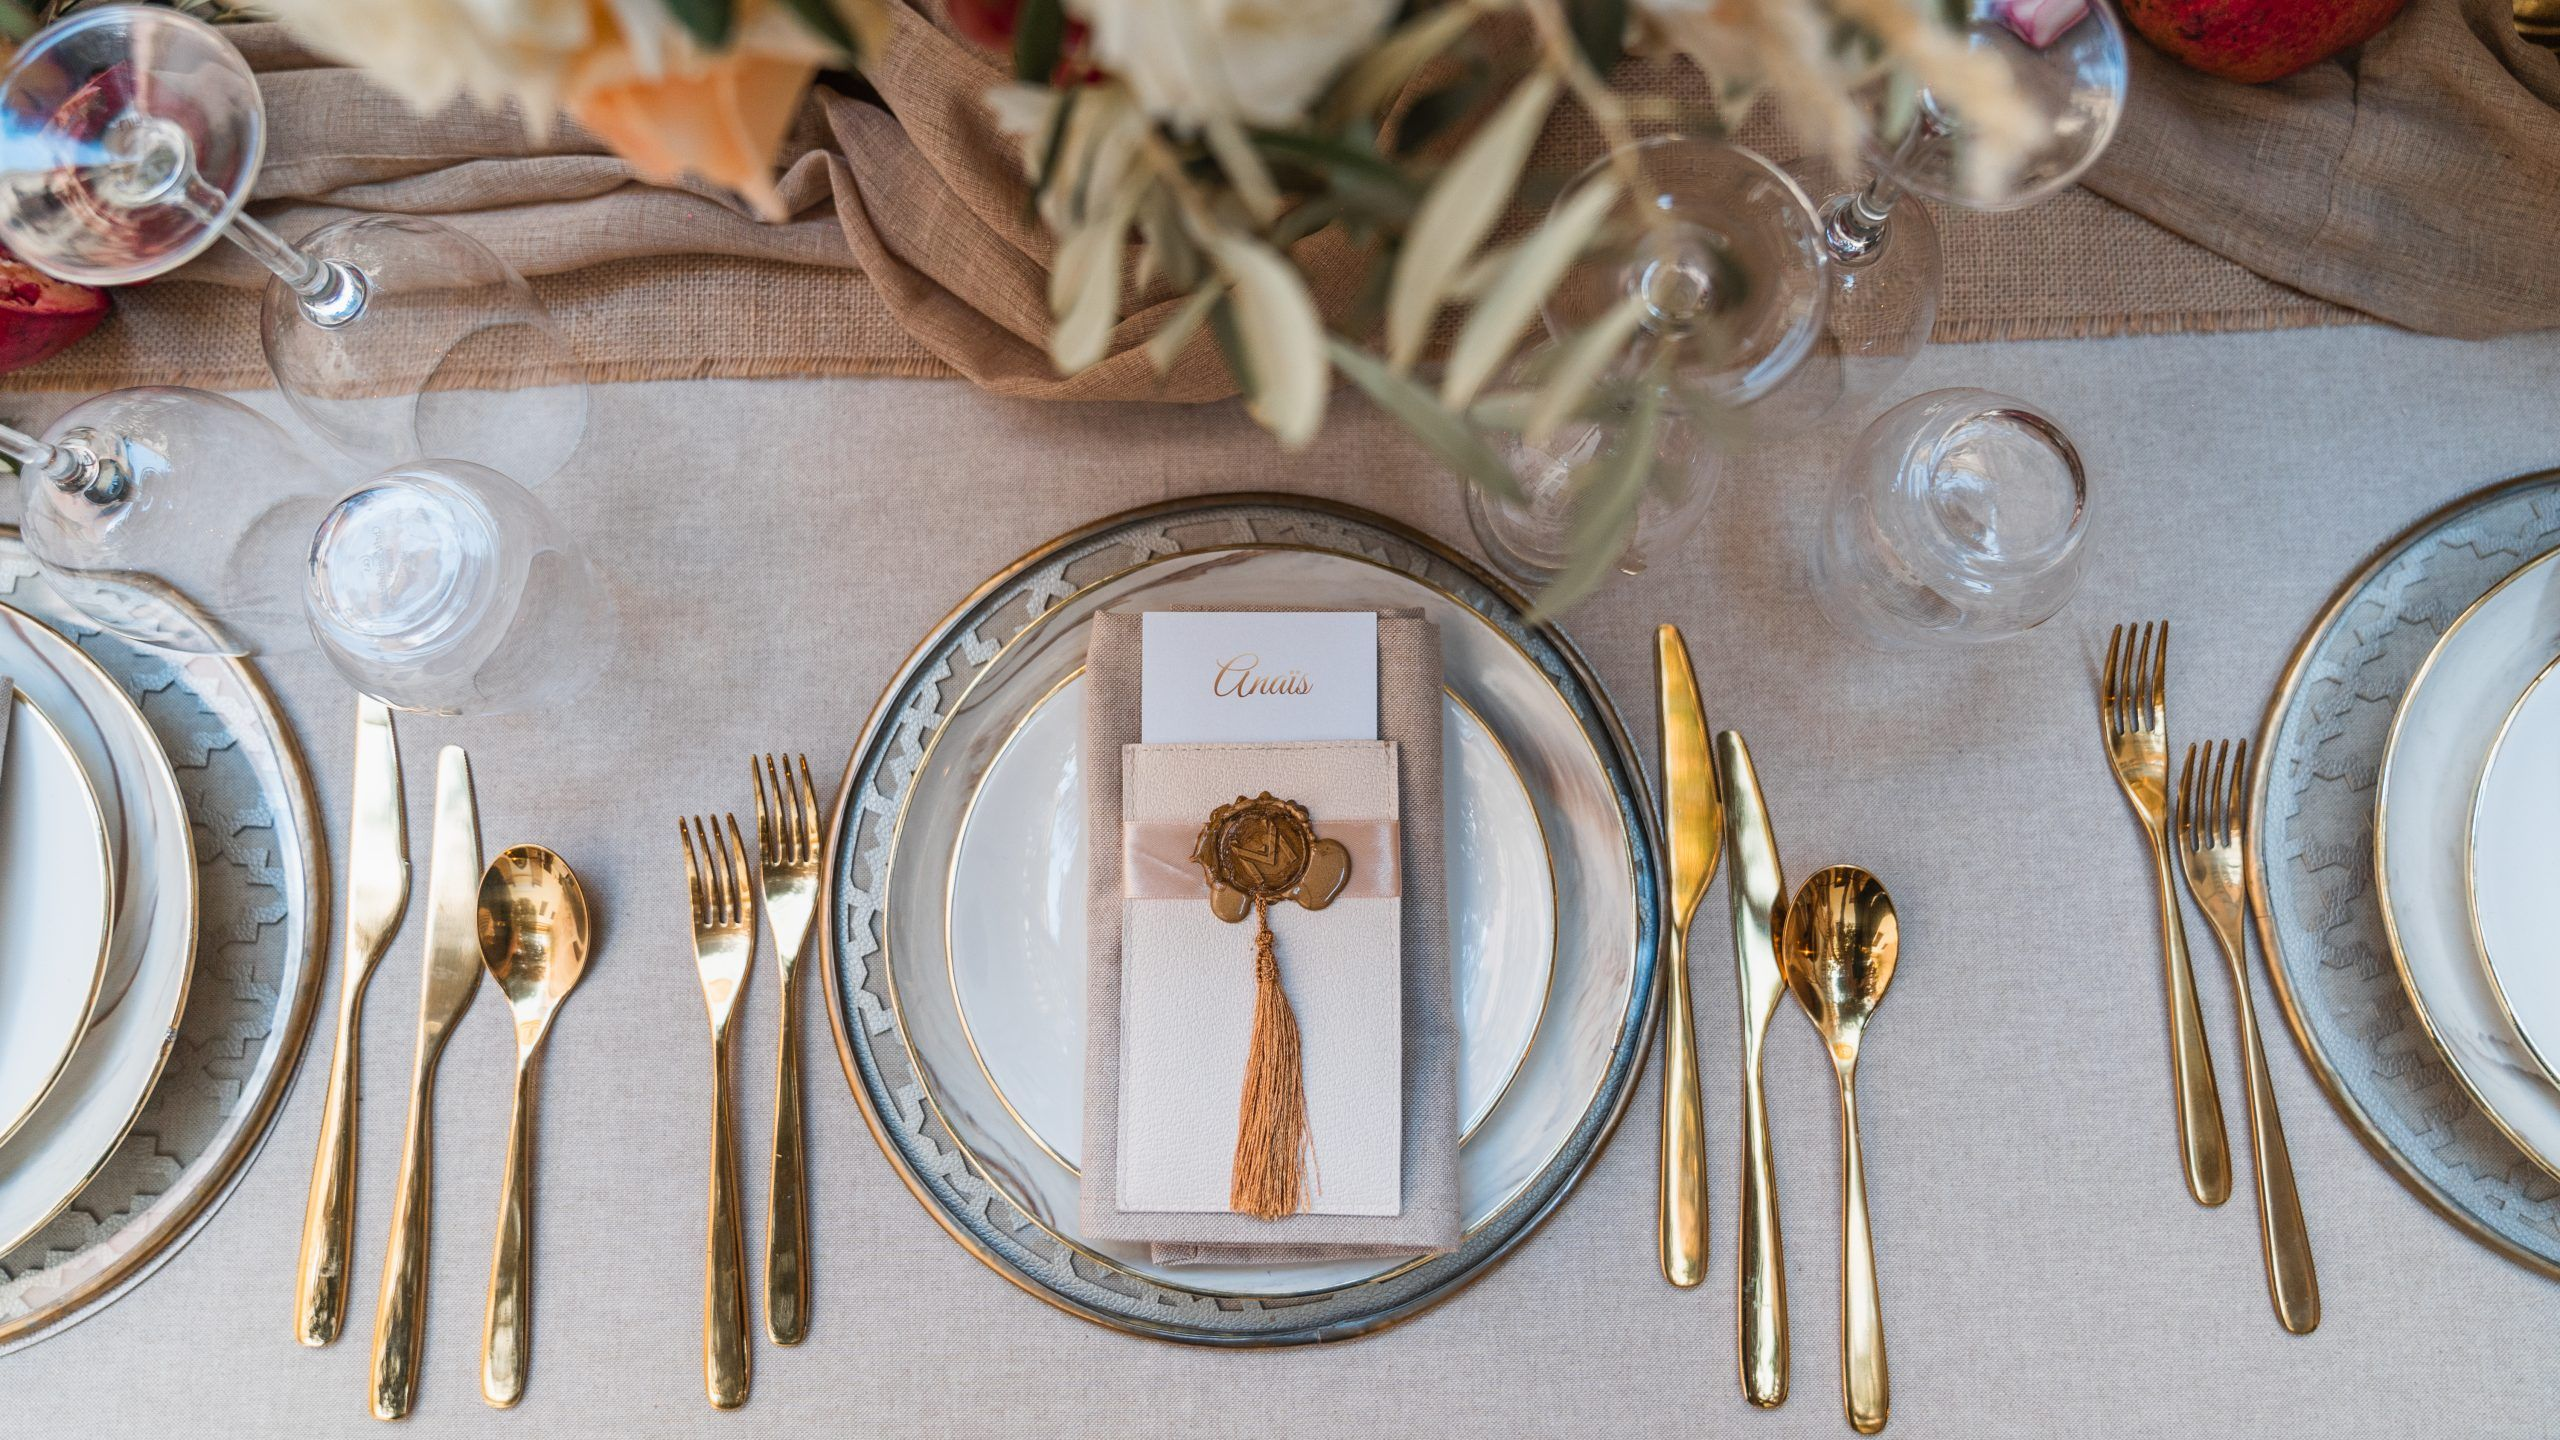 Table of Honour Decor and Dishes for a Simple Chic Wedding in the Medina of Marrakesh